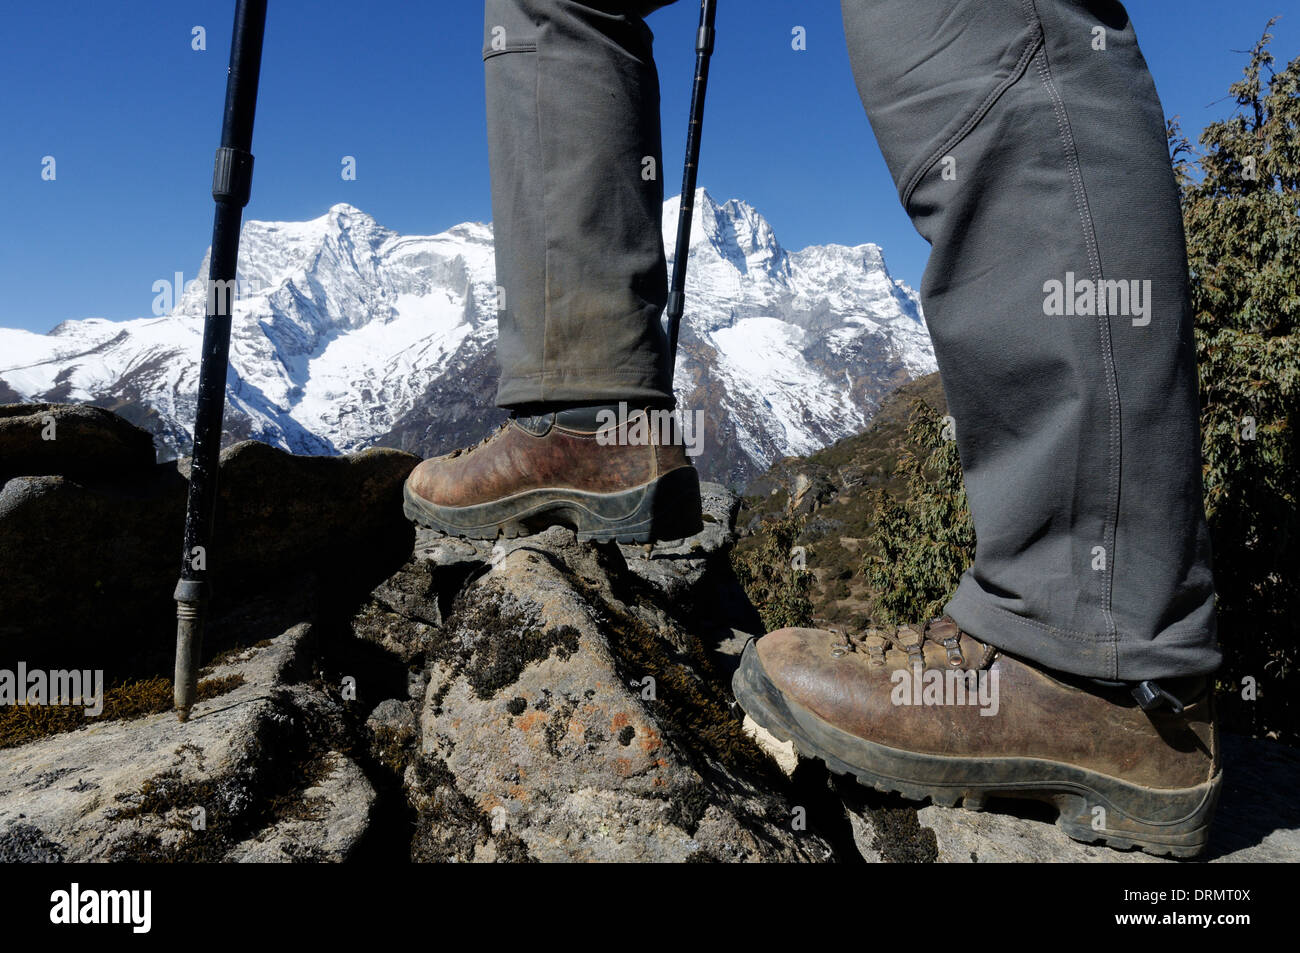 A trekkers boots and legs on the everest base camp trek in the Himalaya - Stock Image